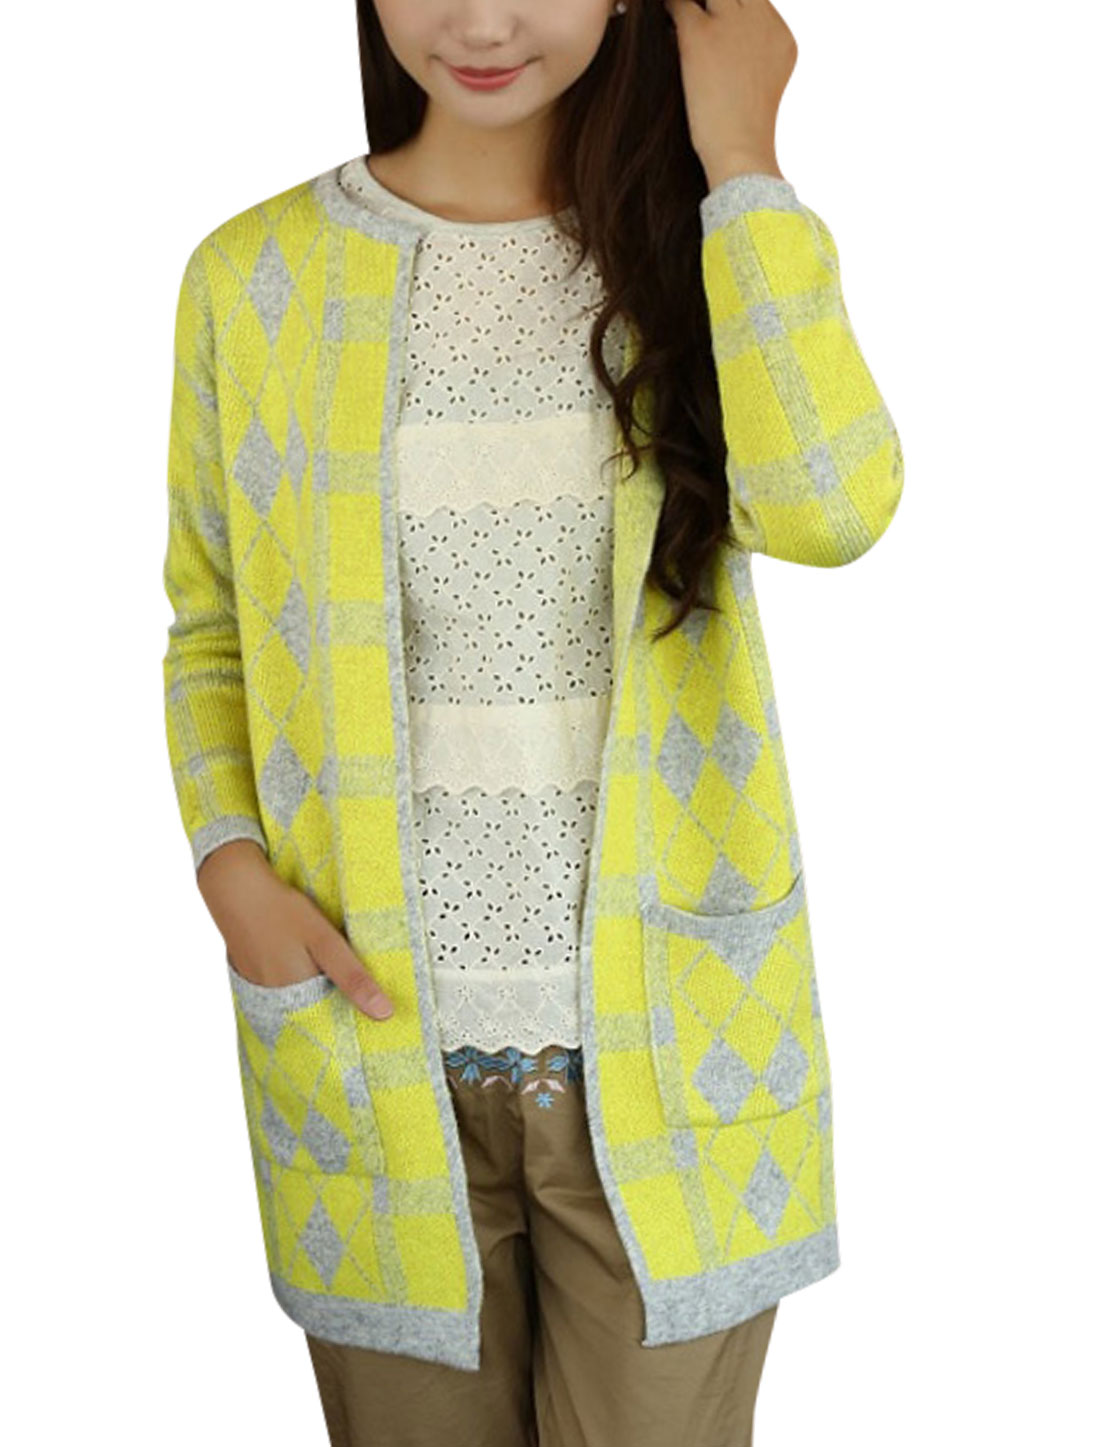 Women Two Patch Pockets Argyle Check Pattern Tunic Knit Cardigan Yellow S